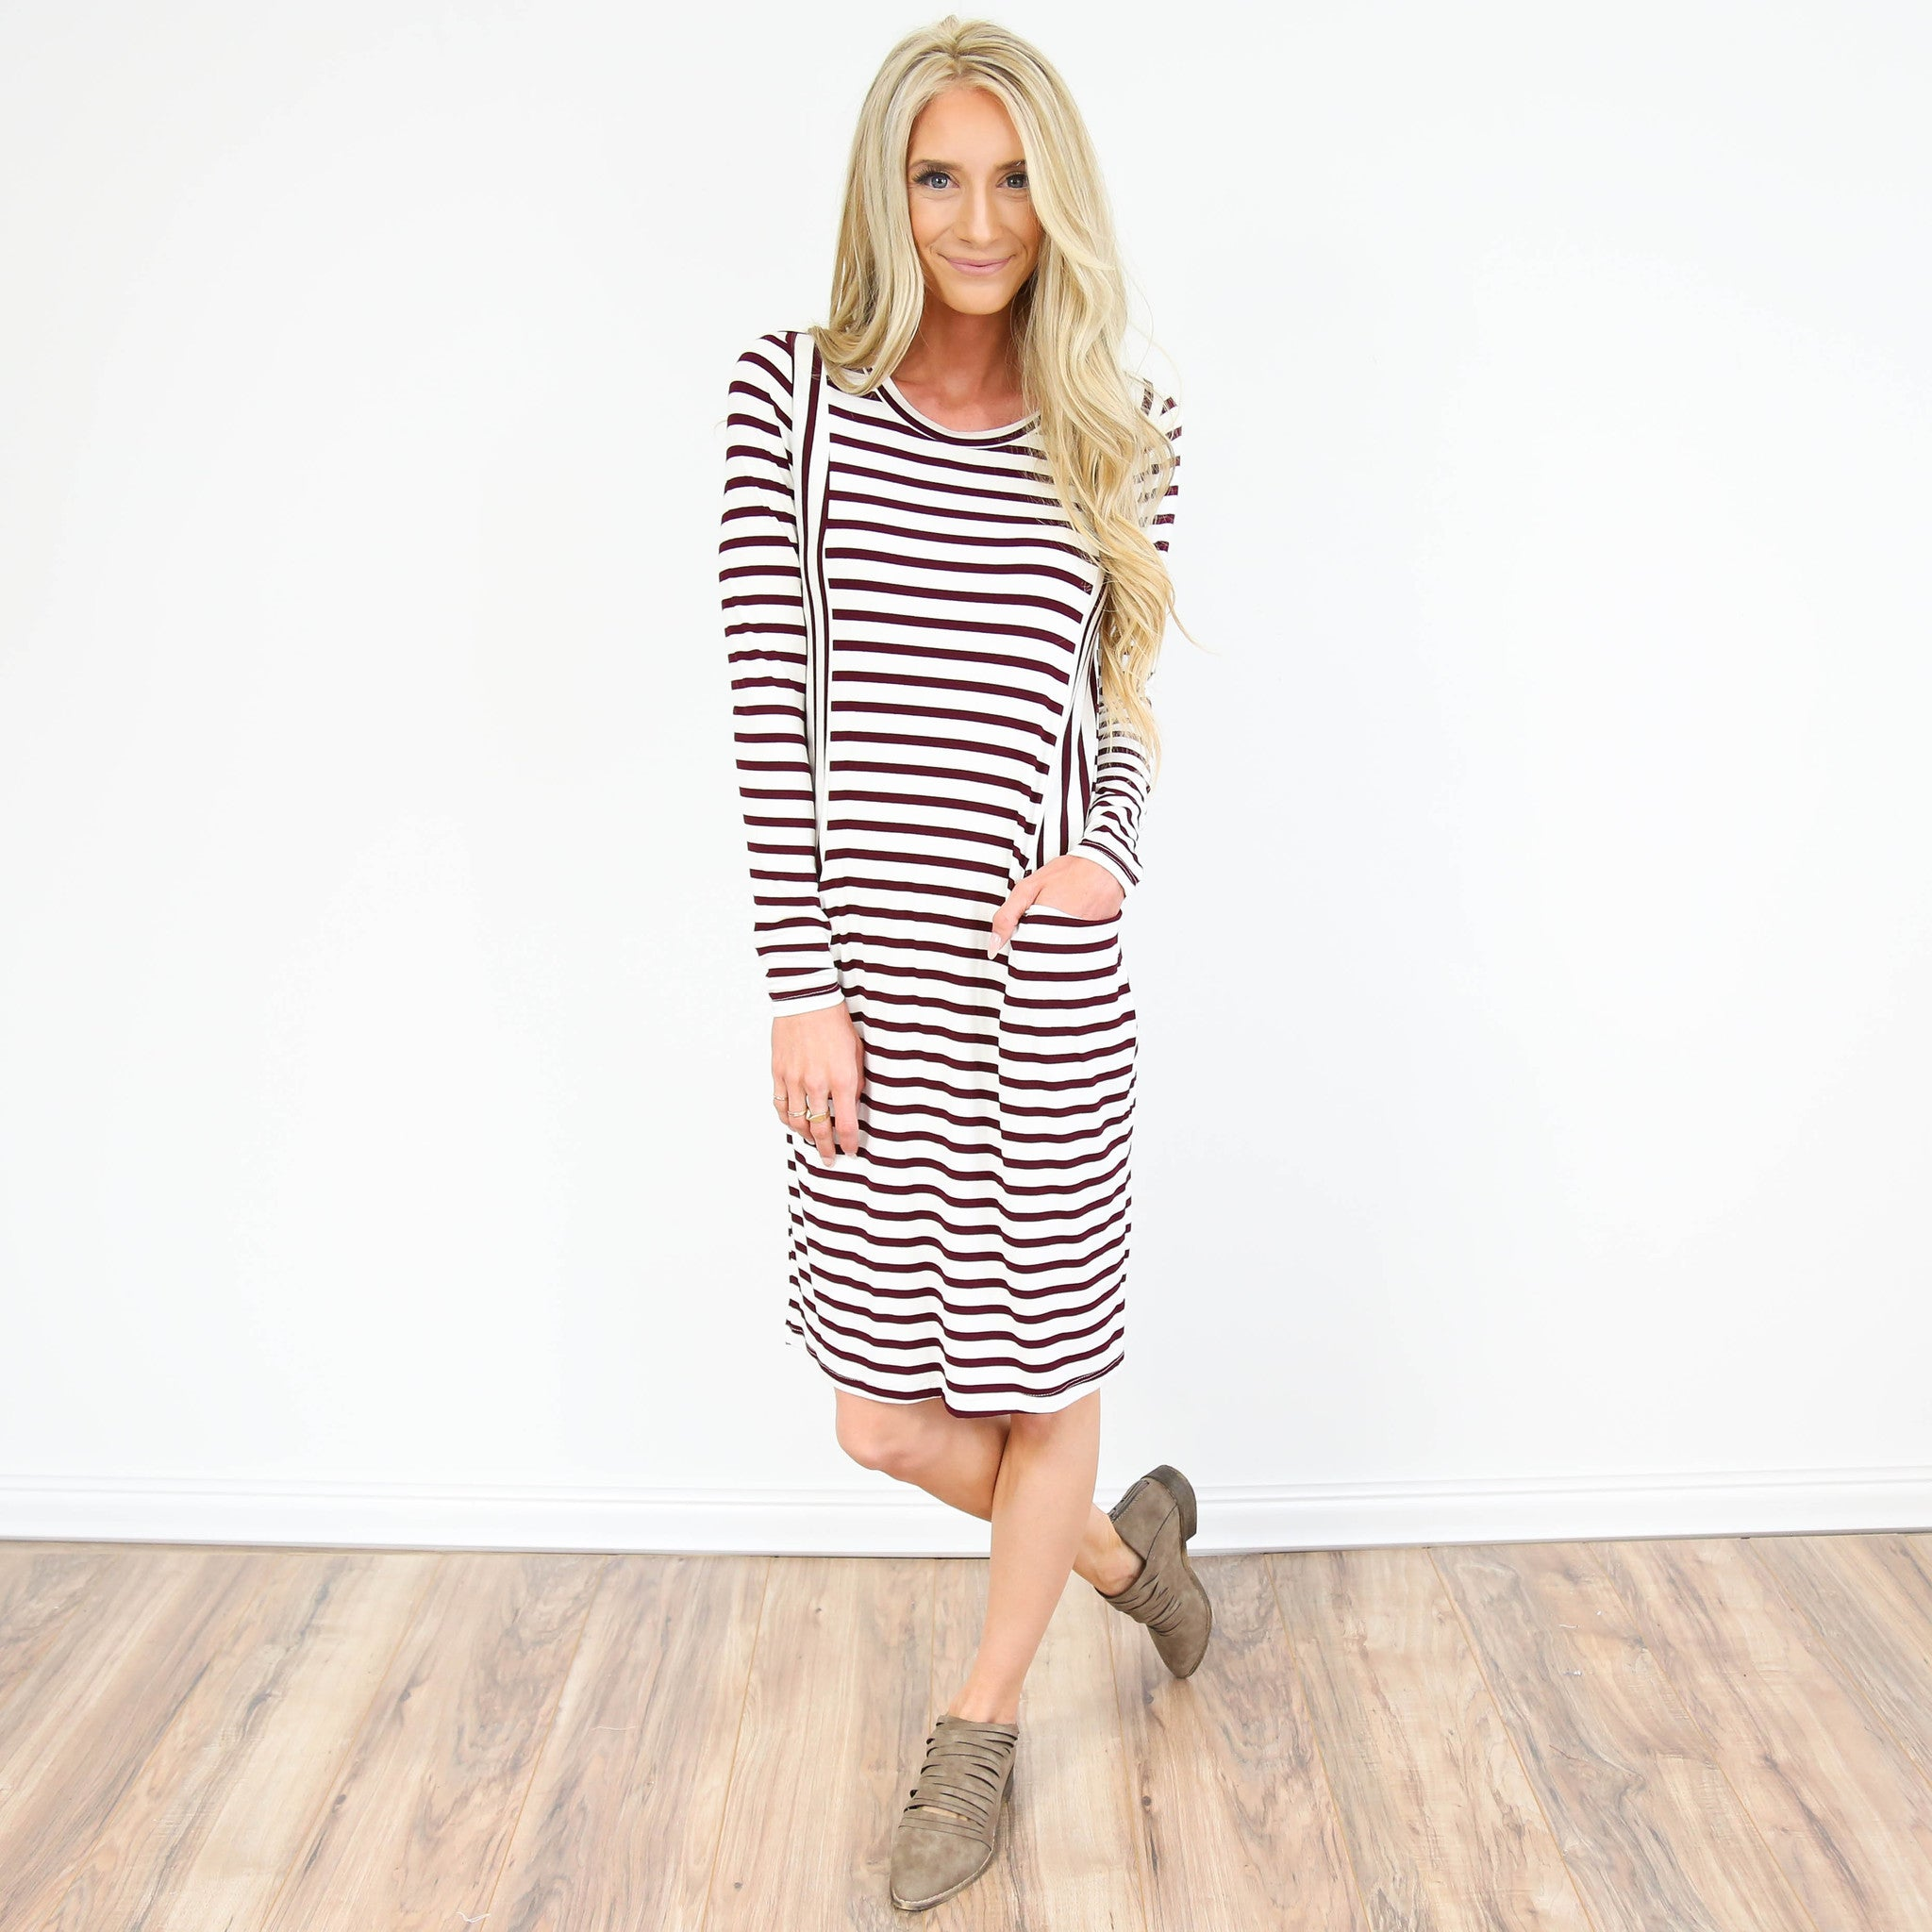 Janie Stripe Dress